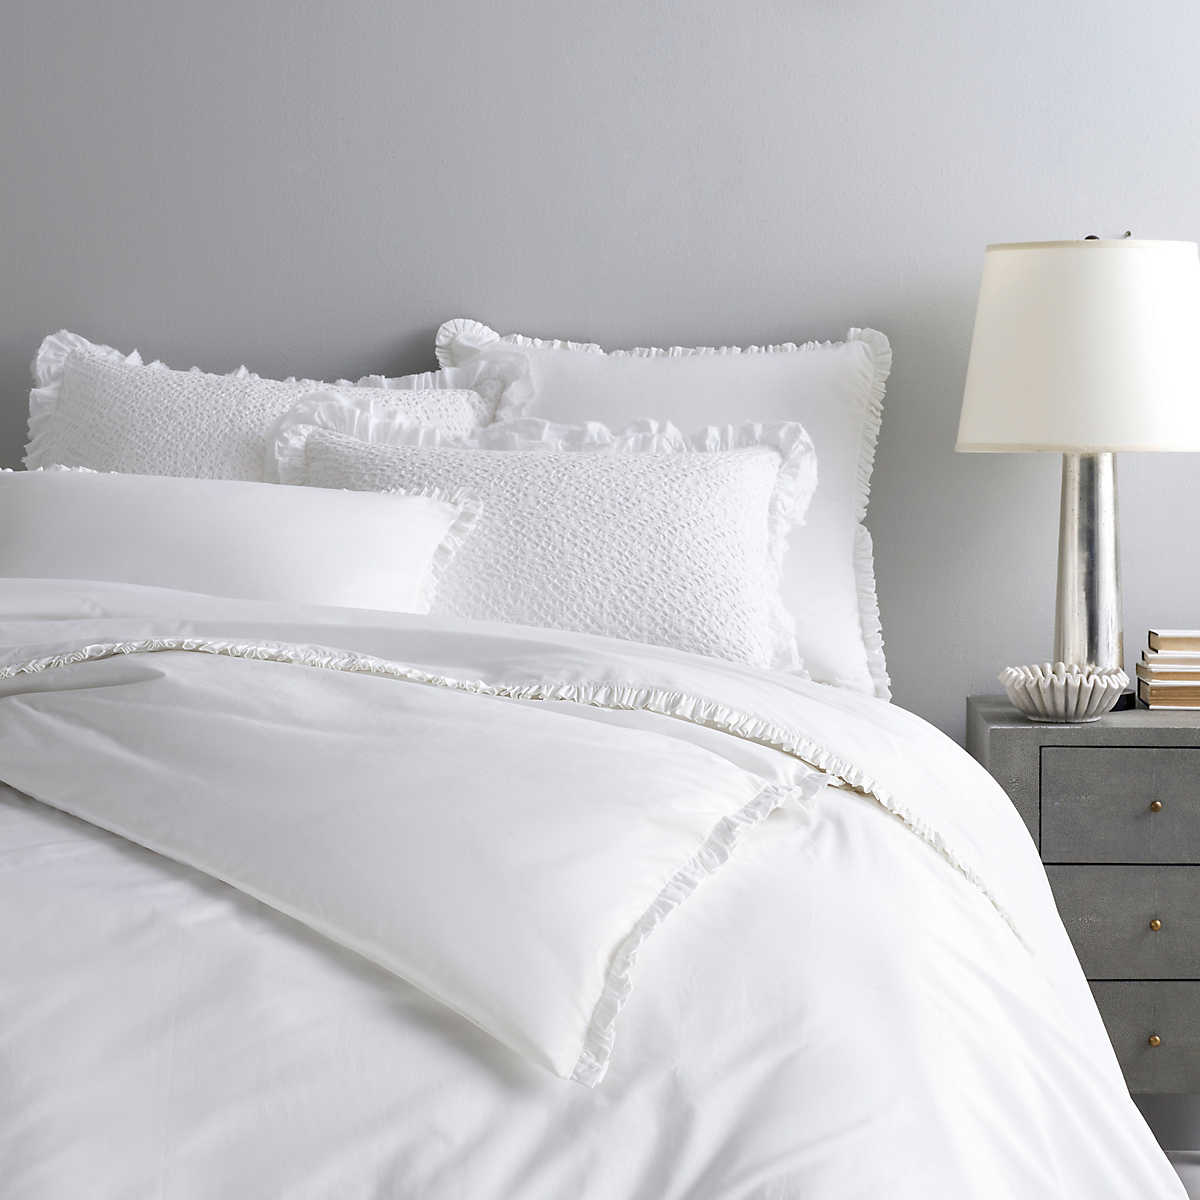 Discover our soft and luxurious ruched bedding. The Sutter White duvet set is lustrous ruched bedding made of thread-count % cotton sateen.